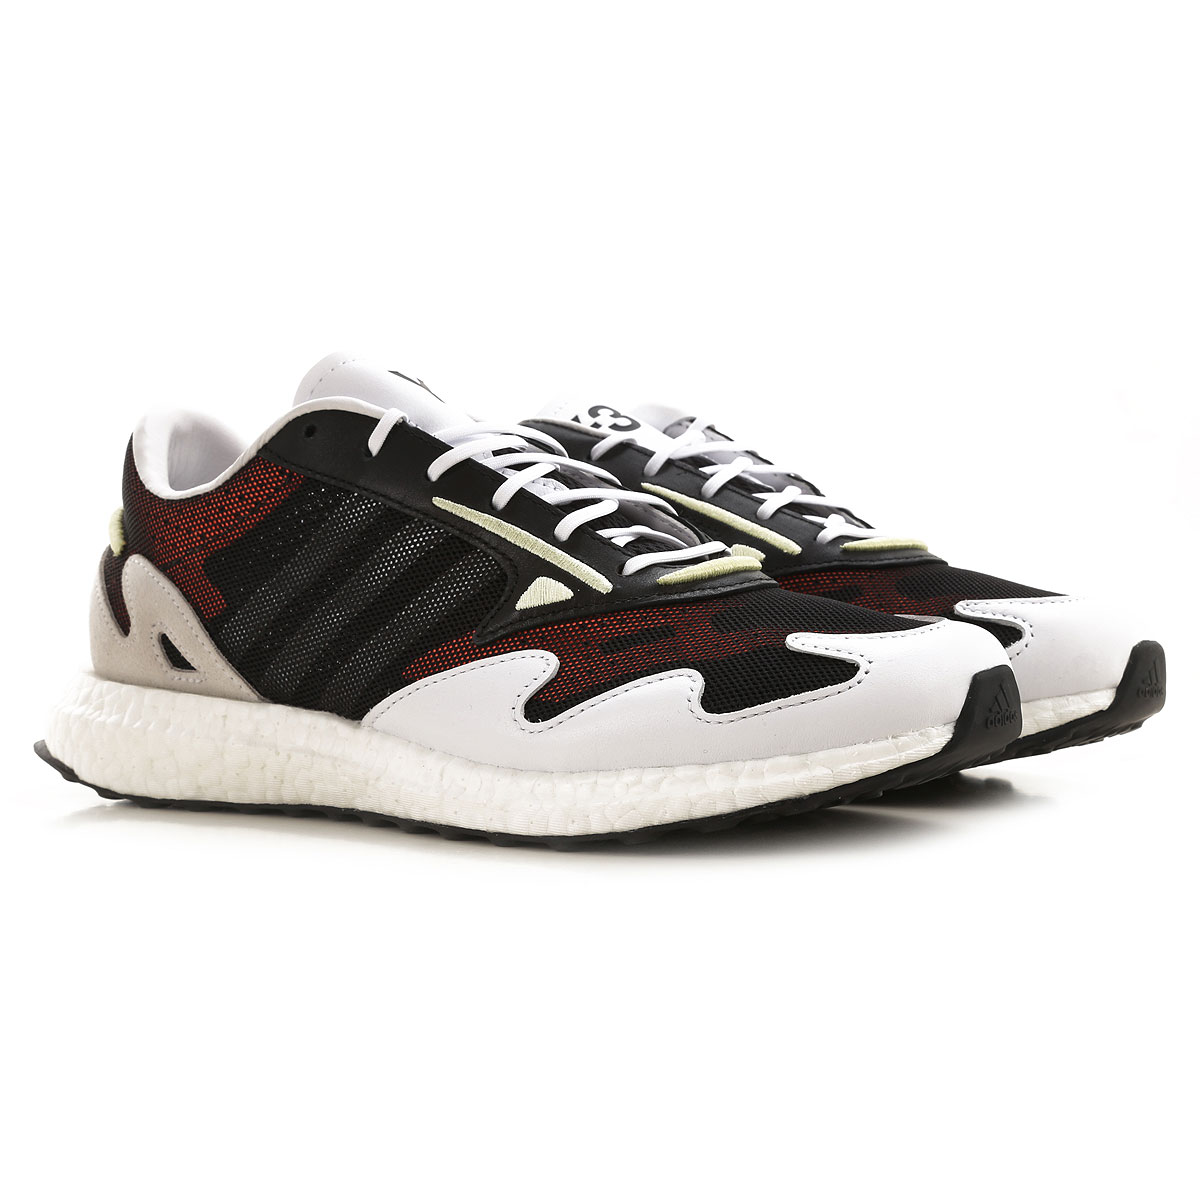 Y3 by Yohji Yamamoto Sneakers for Men On Sale, Black, Leather, 2019, 10 10.5 8 8.5 9 9.5